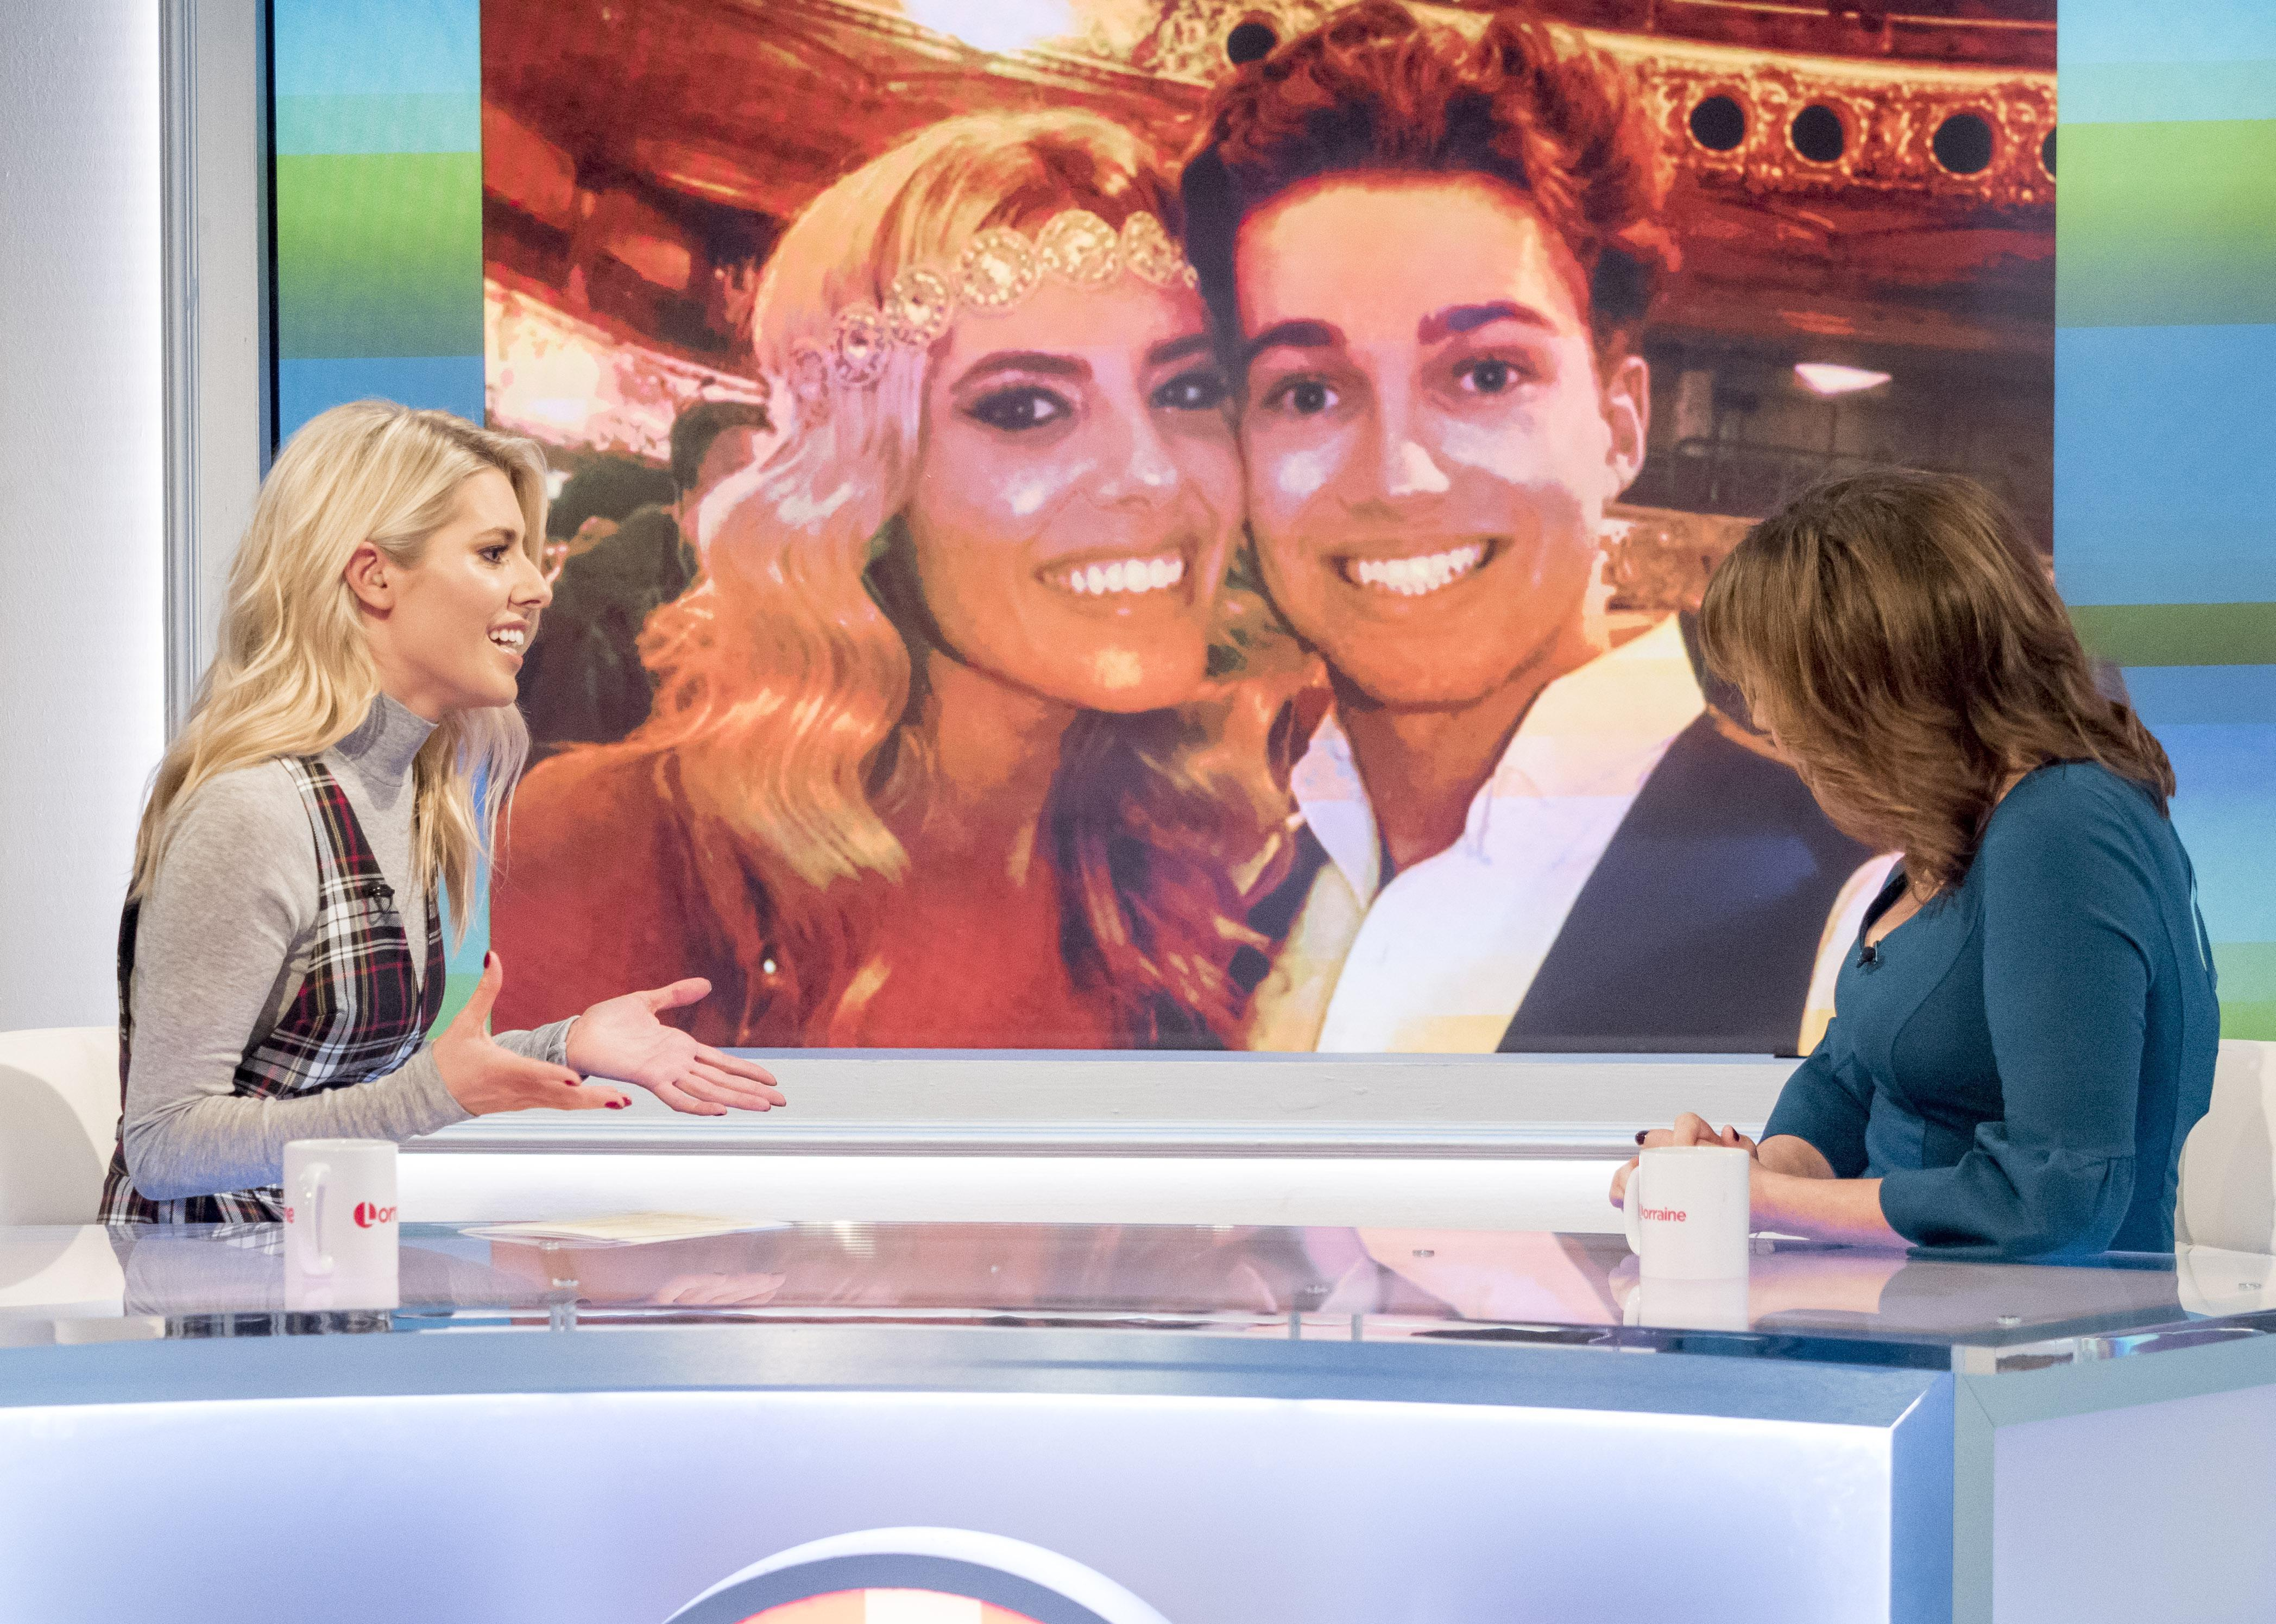 Strictly's Mollie King keeps fans guessing as she says she's 'very close' to AJ Pritchard but insists they're just 'mates'